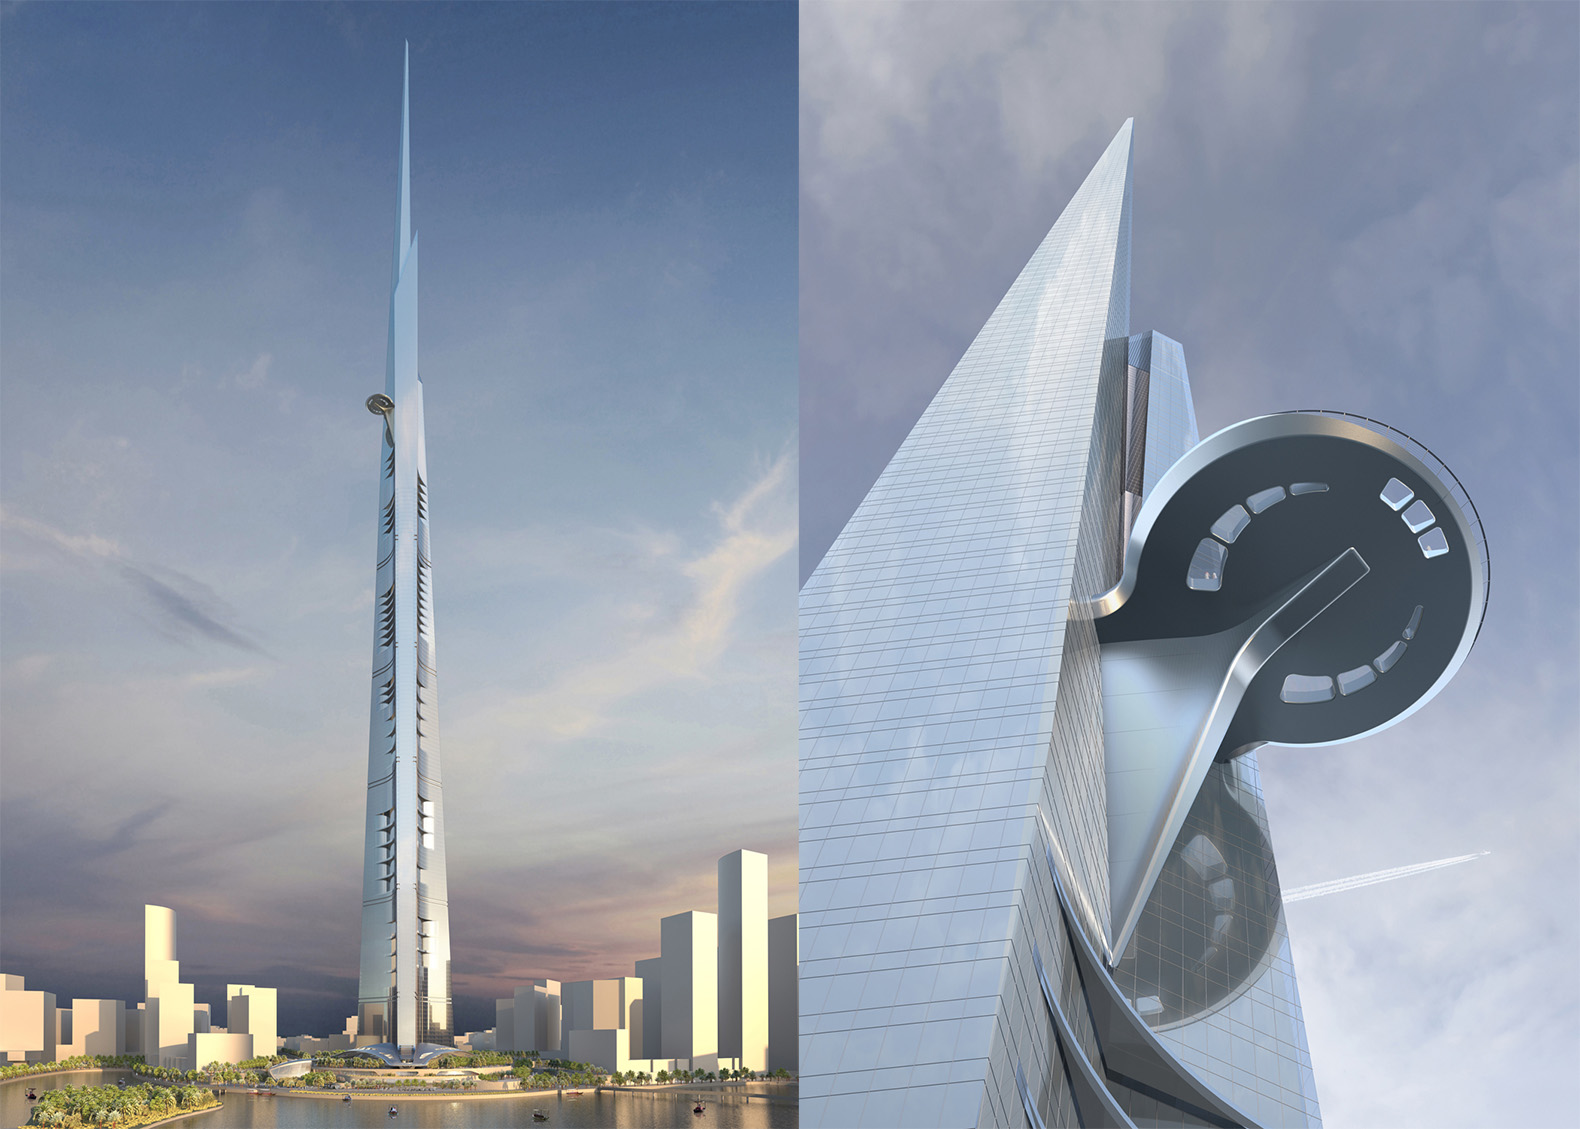 The world's tallest tower will dwarf the Burj Khalifa at